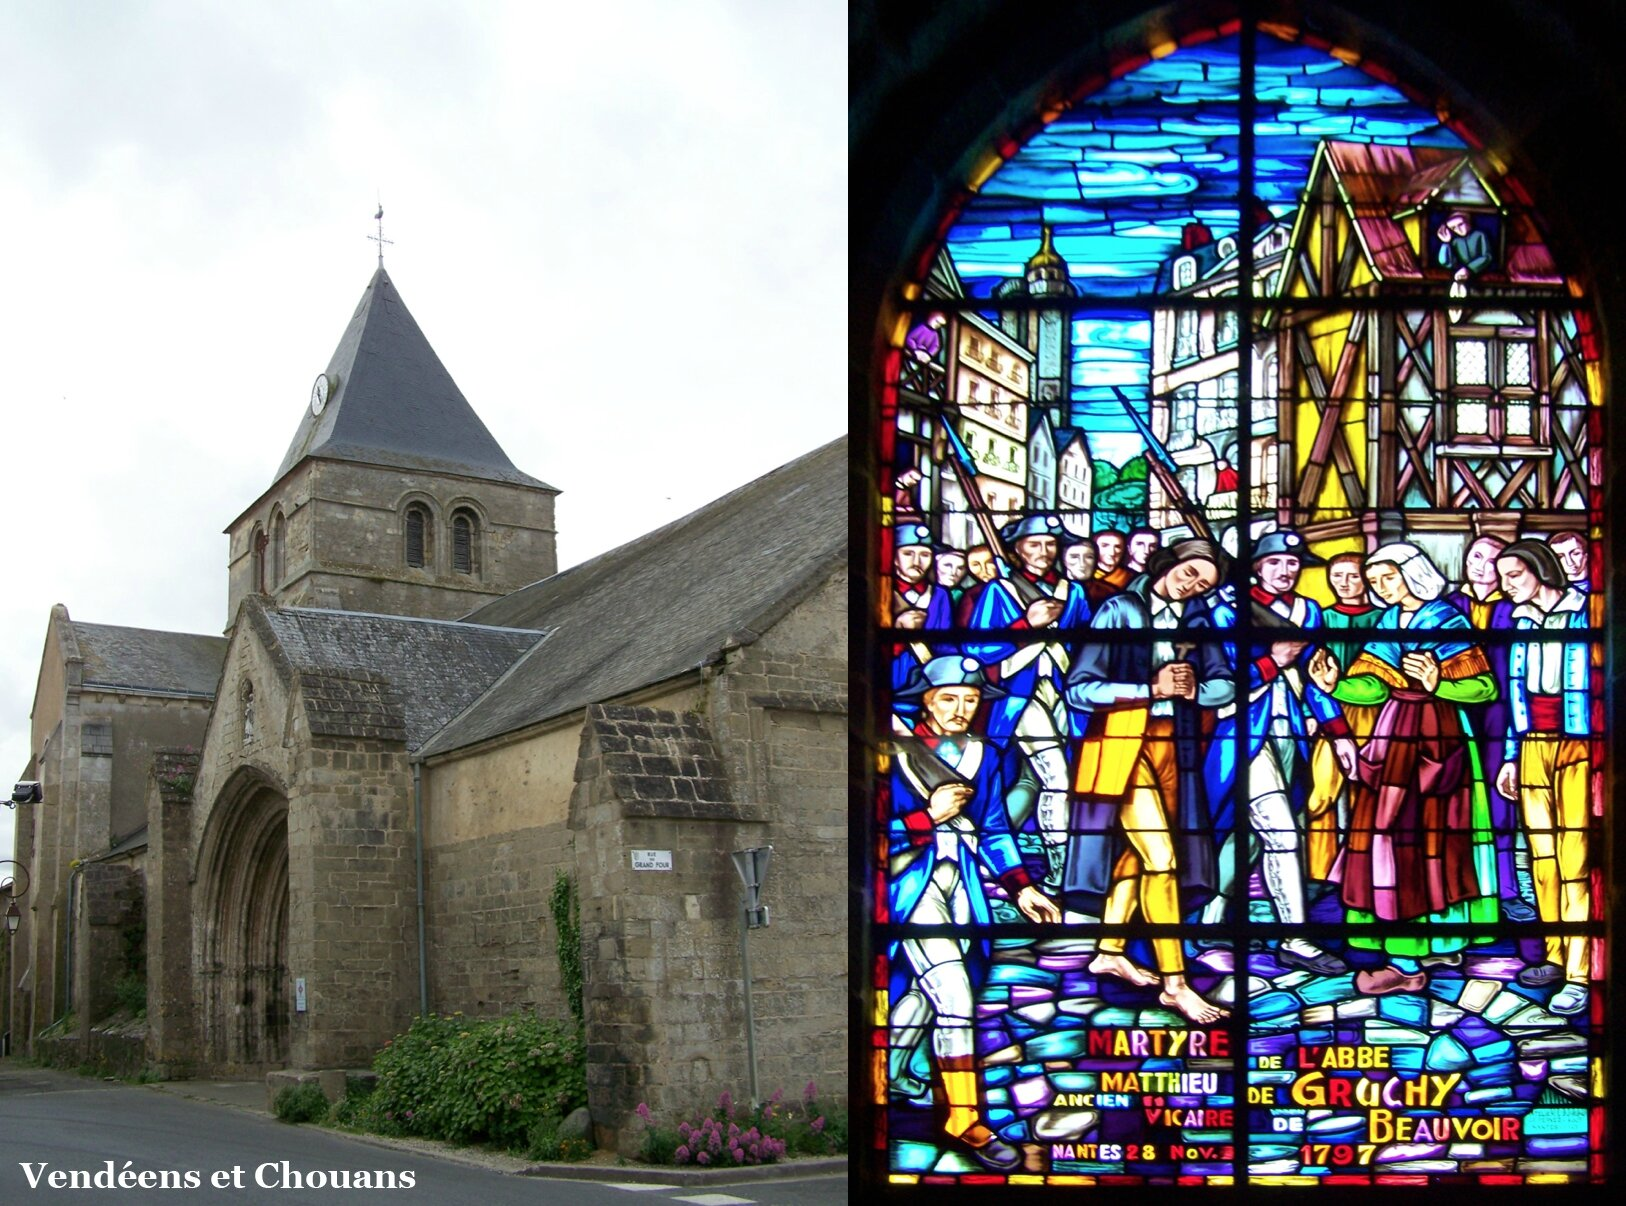 Beauvoir-sur-Mer (85) – Eglise paroissiale (1997)